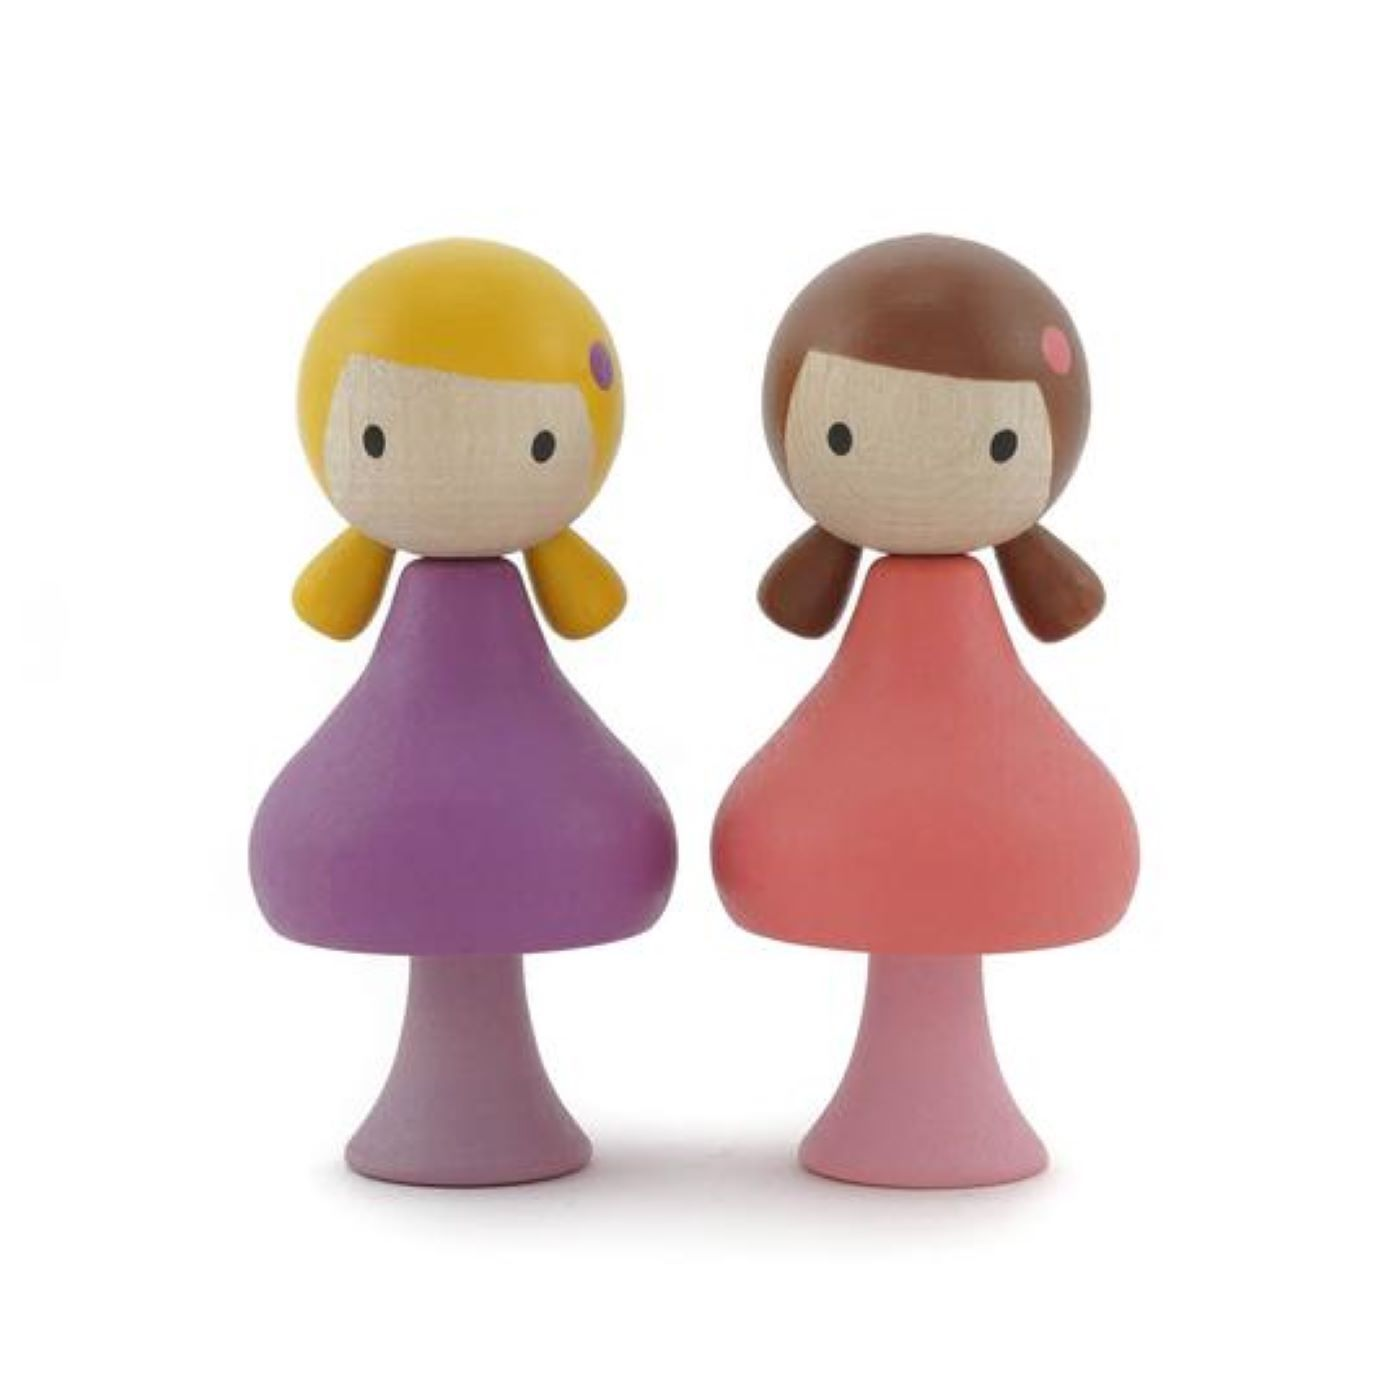 Clicques - Lucy and Maggie Wooden Figurines